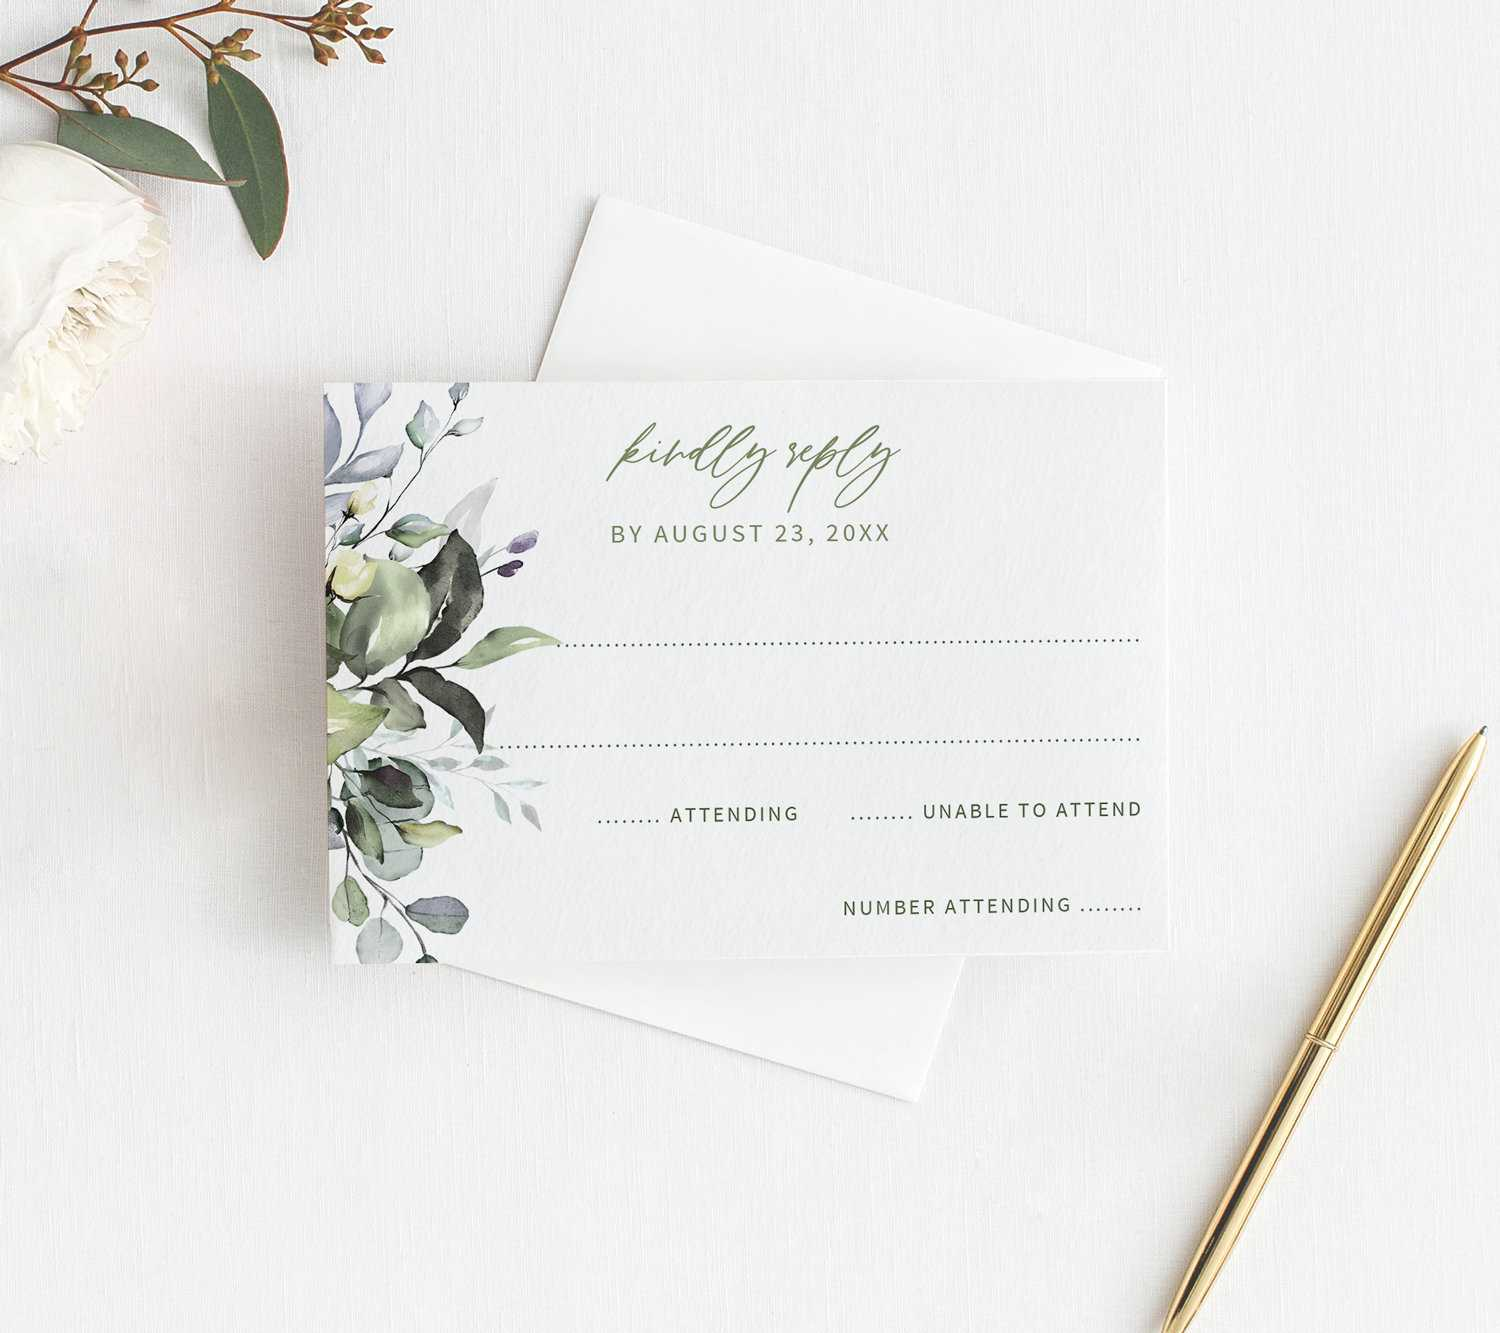 017 Il Fullxfull 1899057501 Bx43 Wedding Rsvp Cards With Free Printable Wedding Rsvp Card Templates